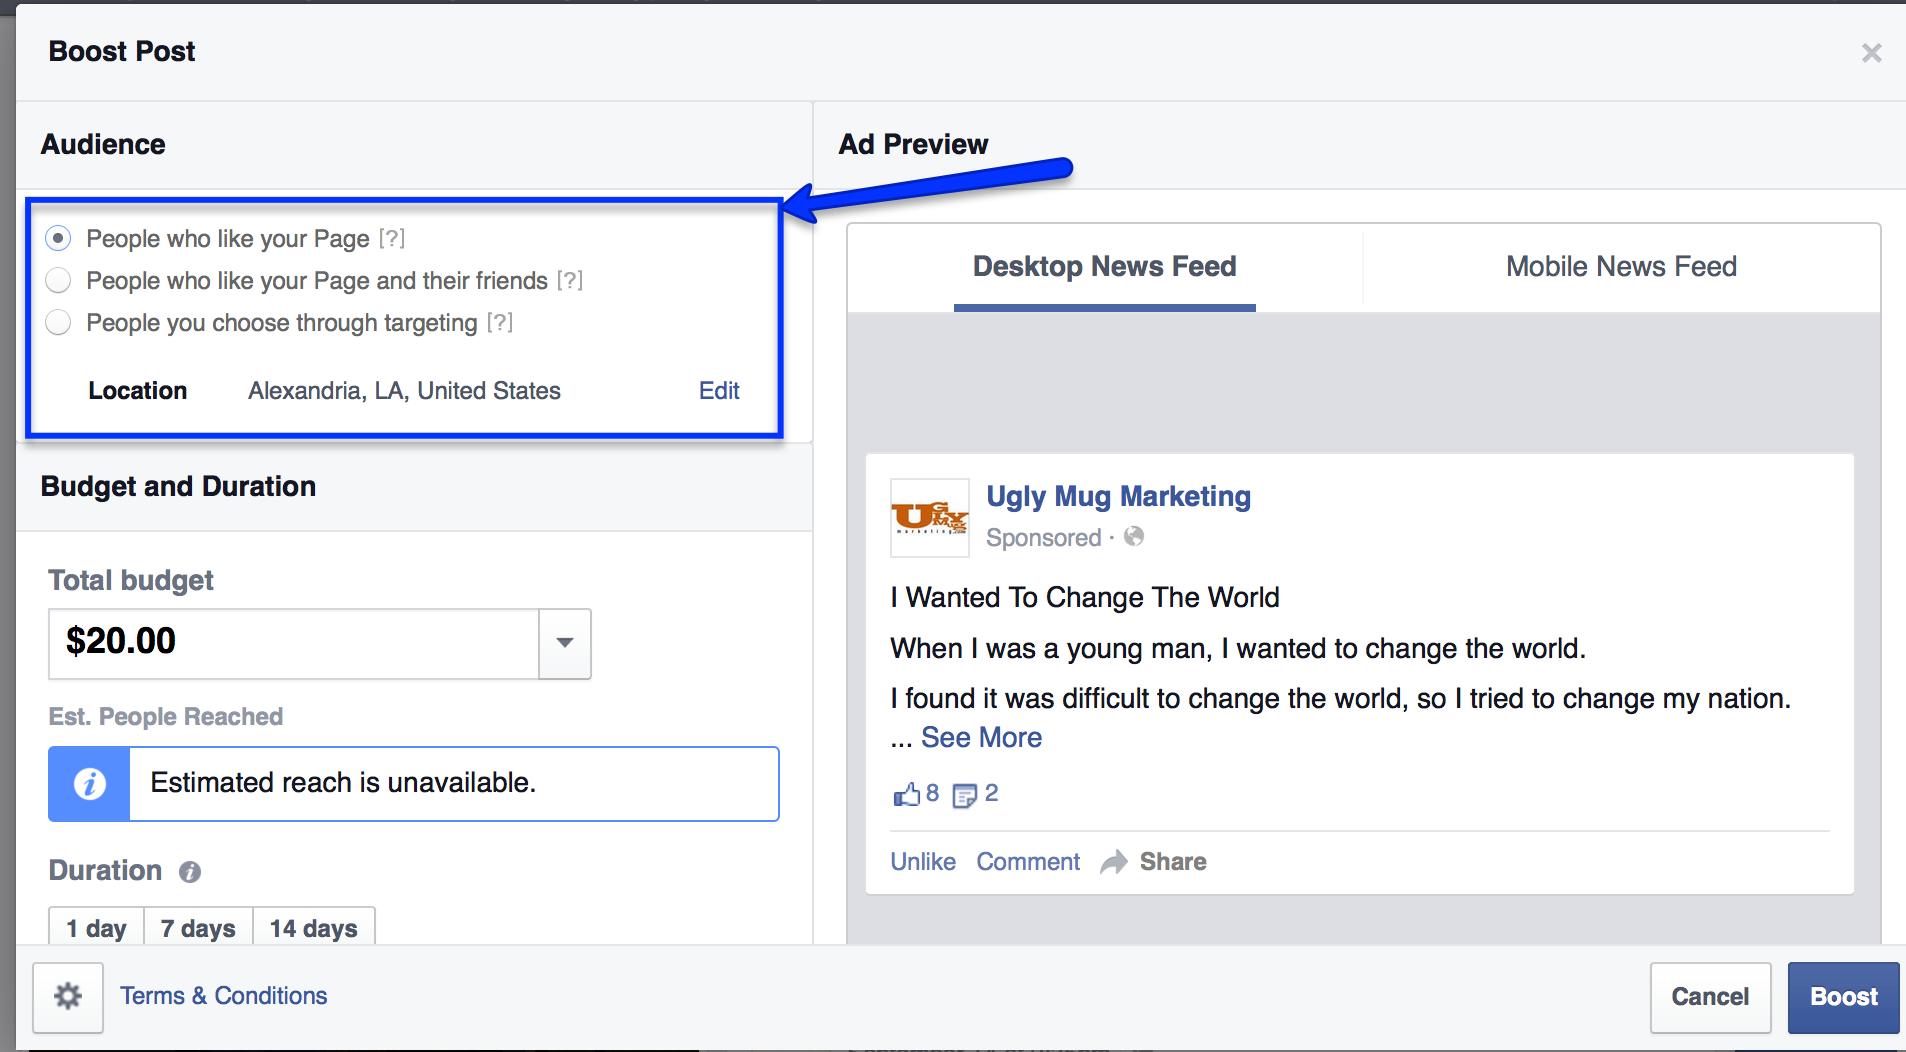 7 Reasons You Should NEVER Hit the Boost Post Button